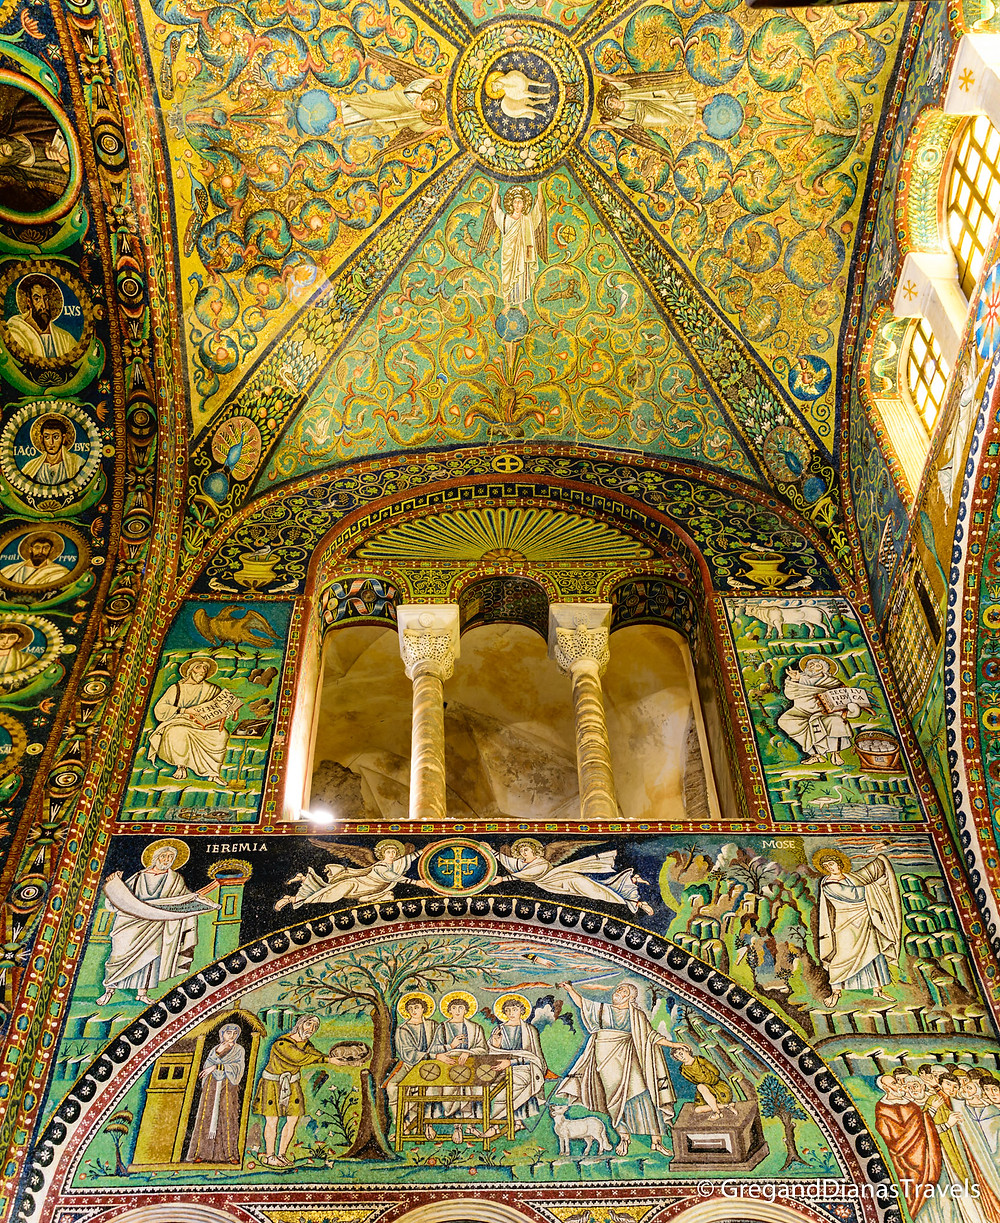 Mosaic decoration on the main walls of Basilica San Vitale